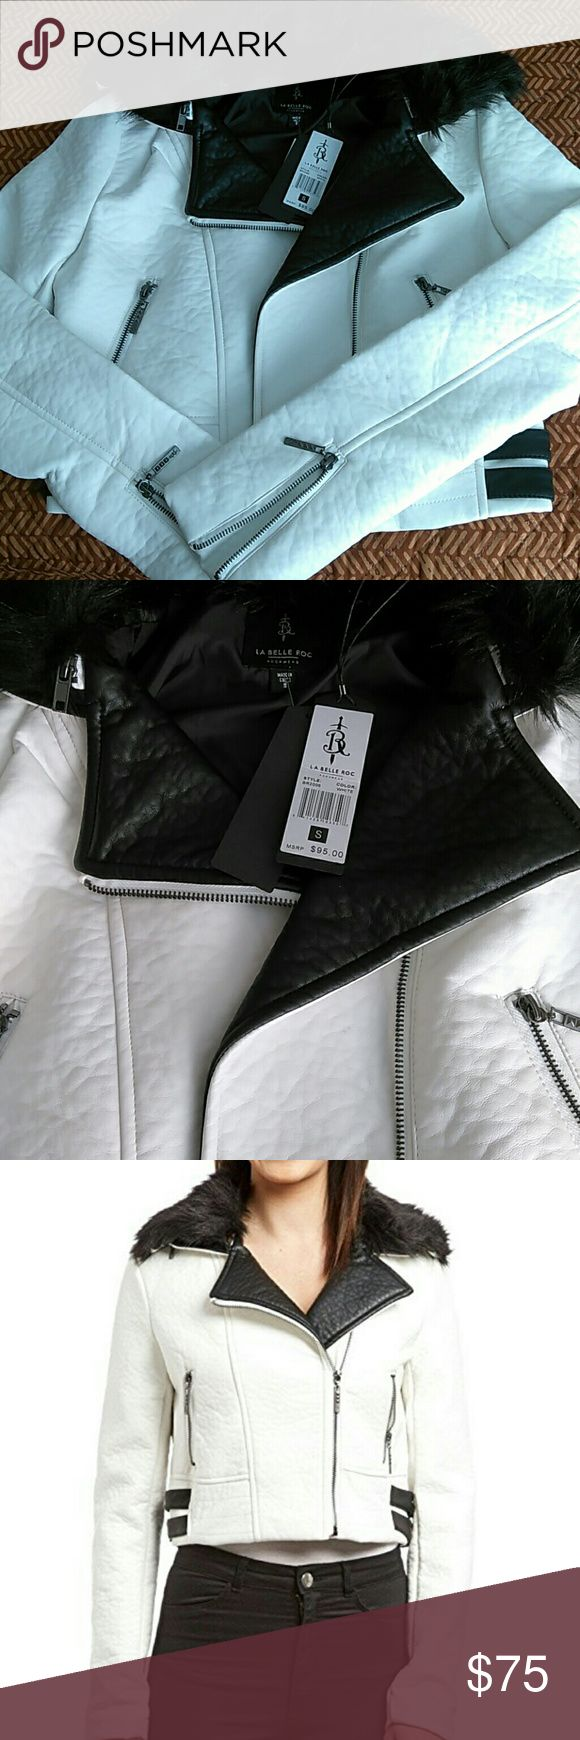 New La Belle Roc Faux Leather Jacket New La Belle Roc by Rocawear Broken Heart Faux Leather Jacket. Zip off fur collar. The jacket is white with black trim. *I included a stock photo in black with white trim so you can see how cute it looks thrown over the shoulders or open.* La Belle Roc by Rocawear Jackets & Coats